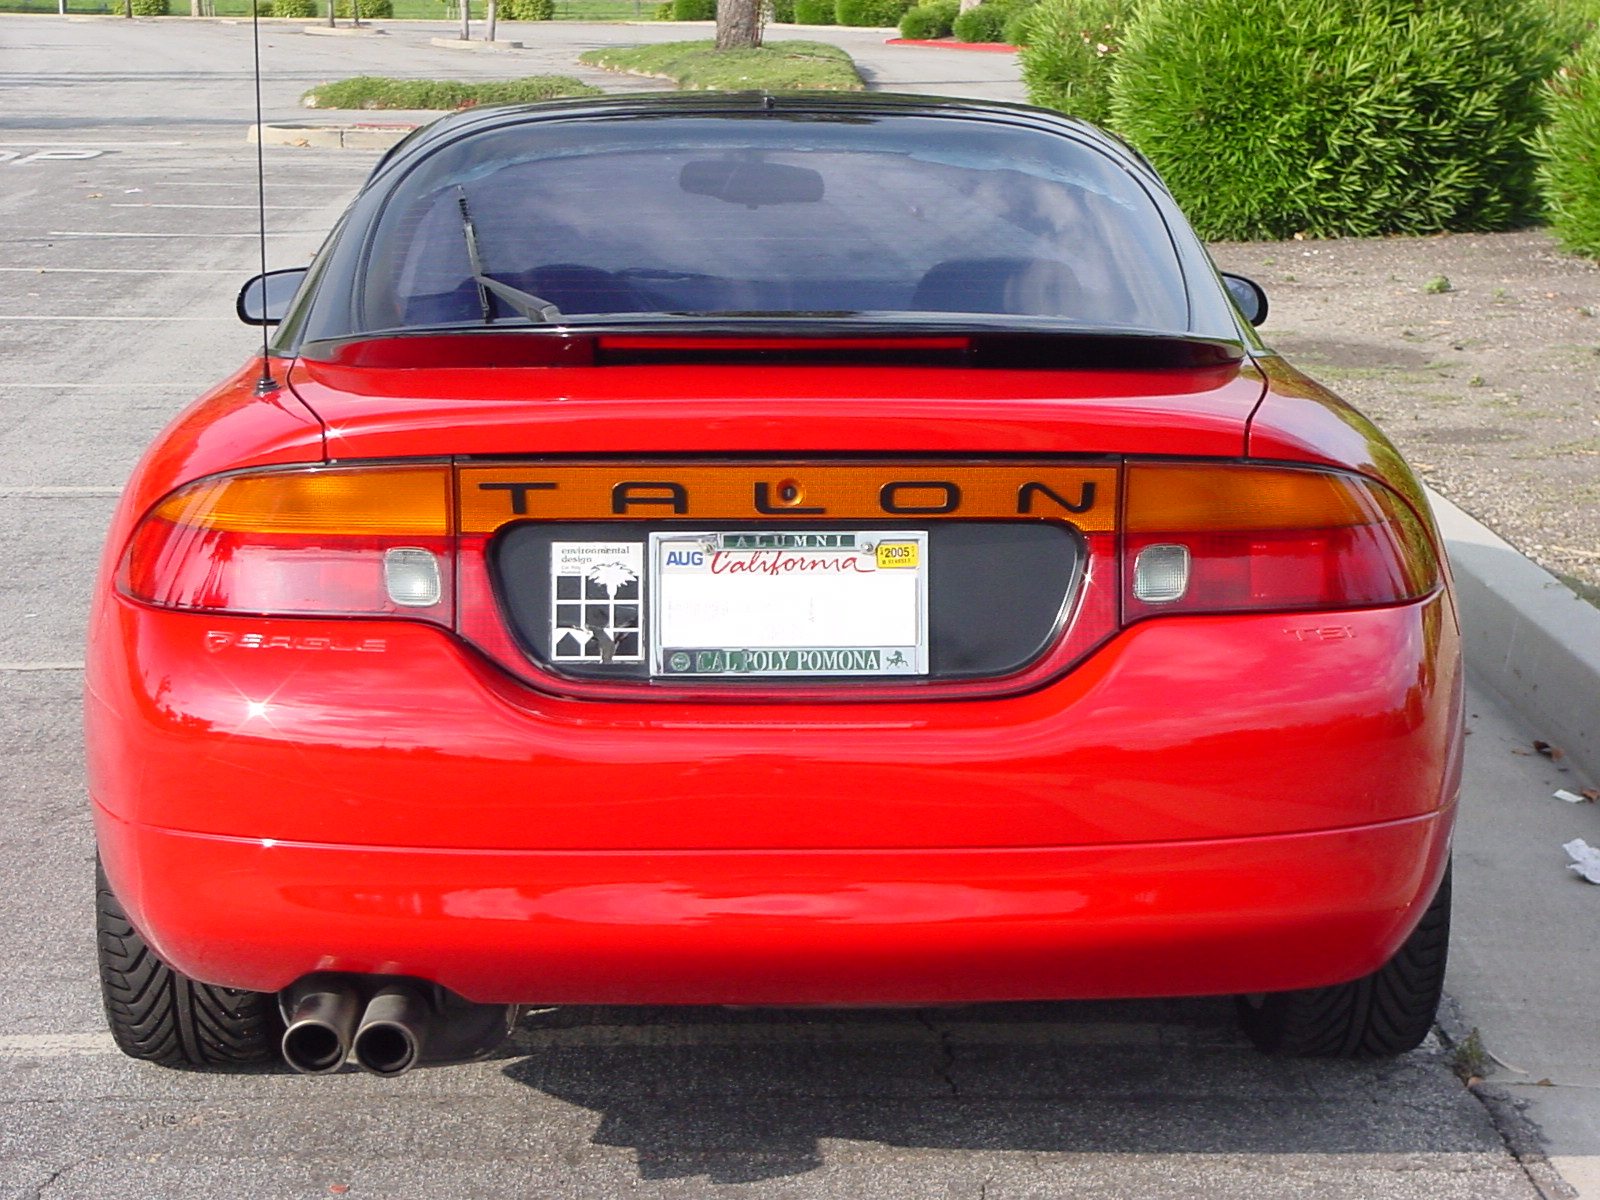 Eagle Talon #11